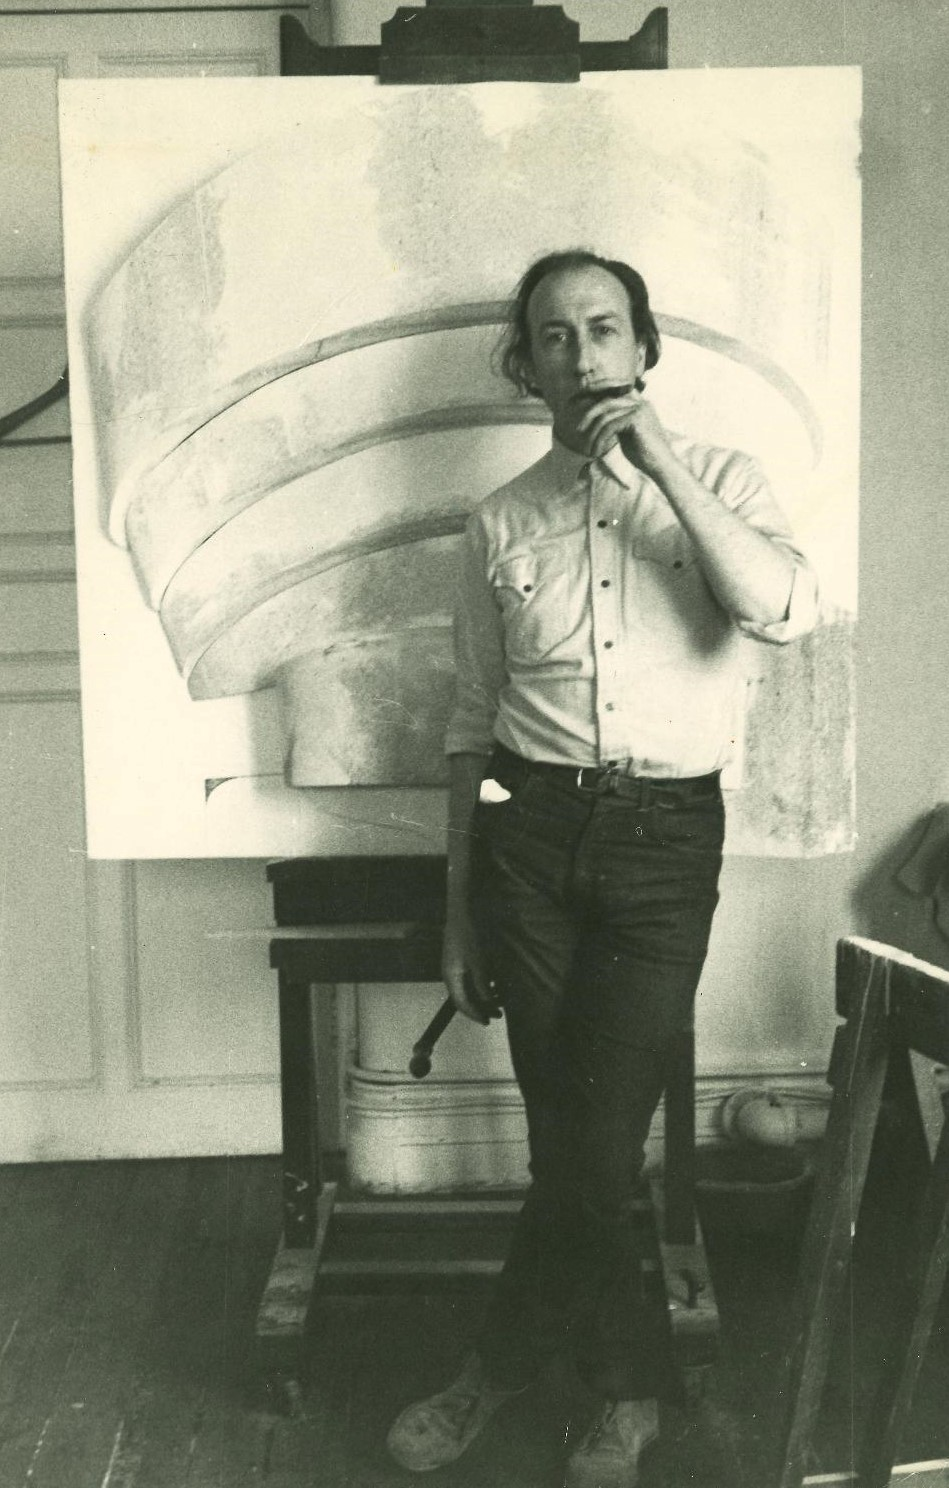 Mary Webb's tutor, the artist Richard Hamilton in front of one of his iconic relief paintings of the Guggenheim Museum, photographed at Newcastle, 1964.